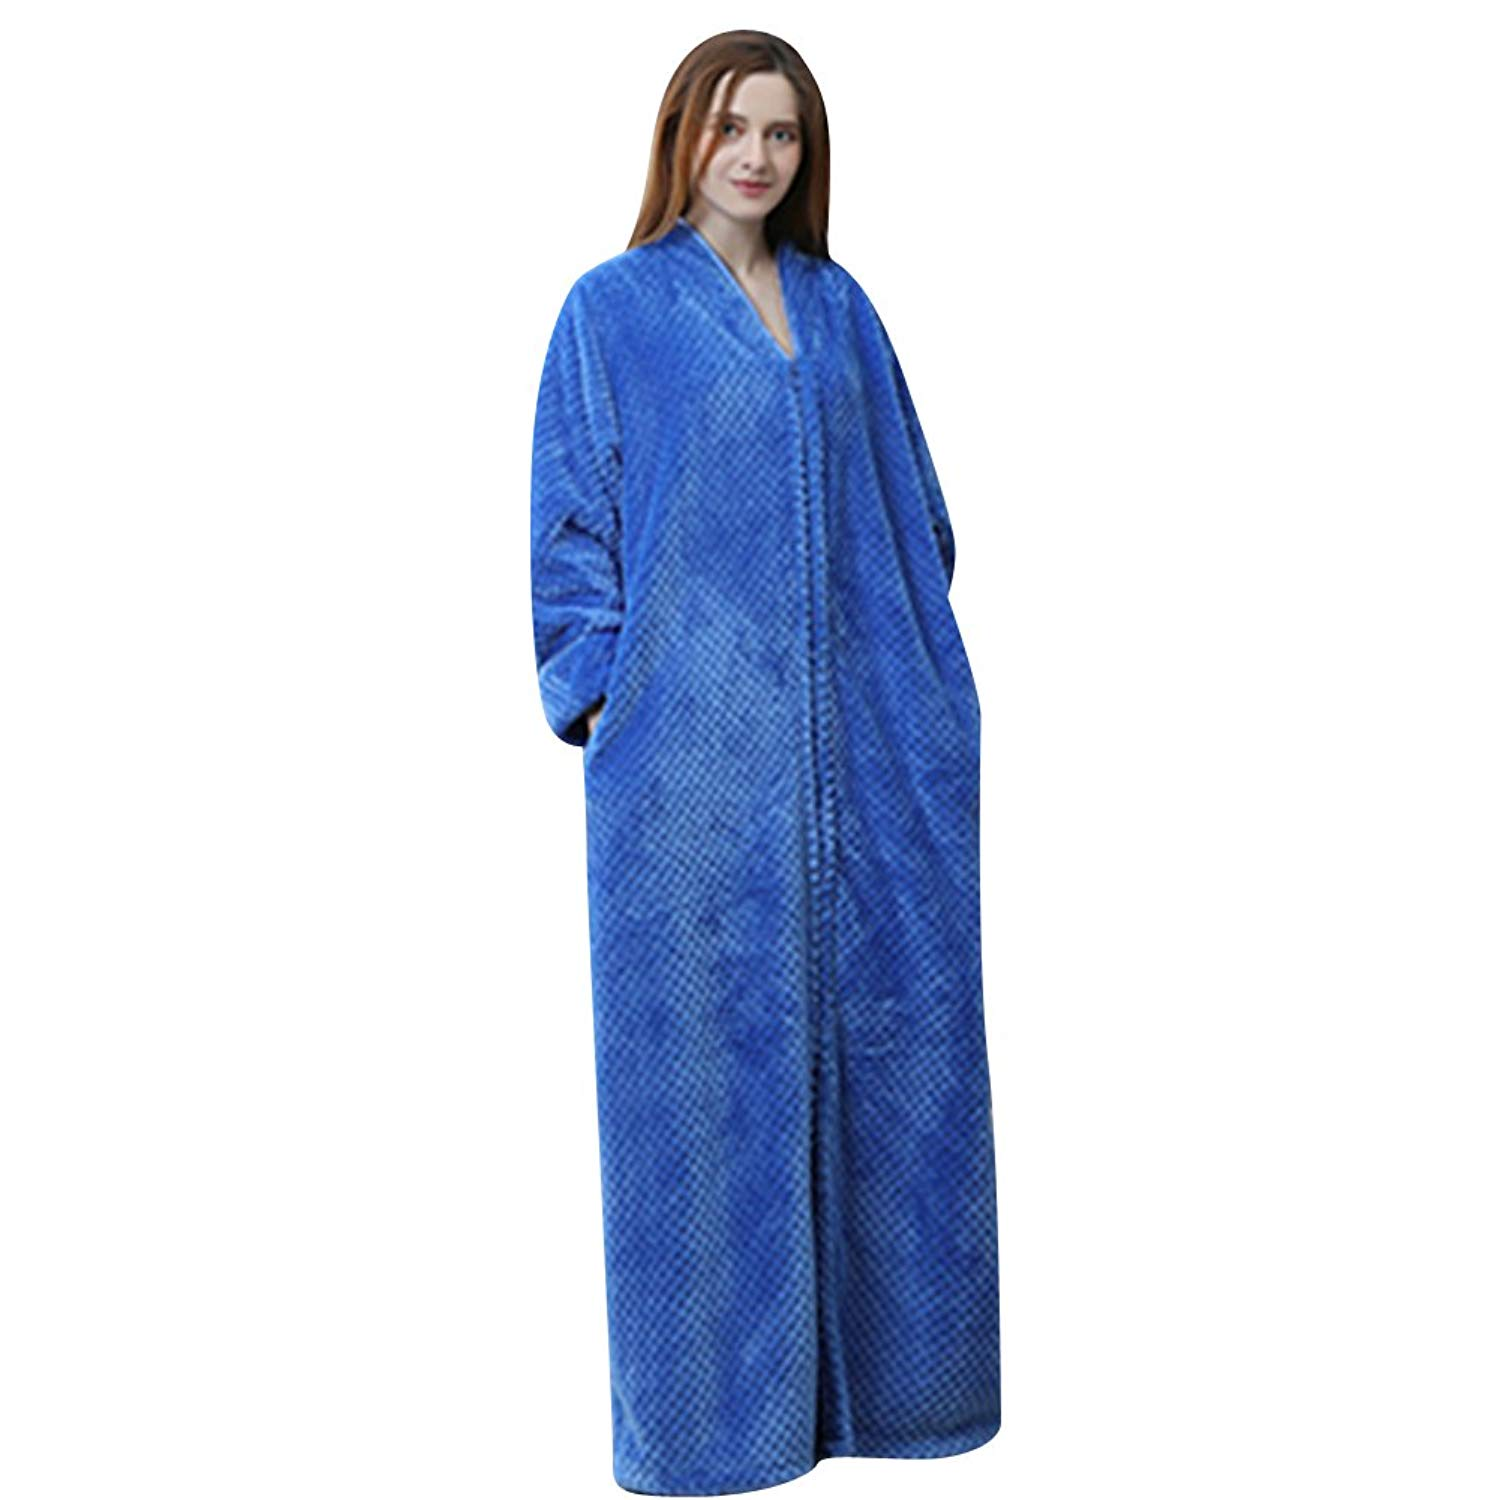 44d57bb230 Get Quotations · Necuv Womens Flannel Warm Long Robes Comfort Sleepwear  Bathrobes